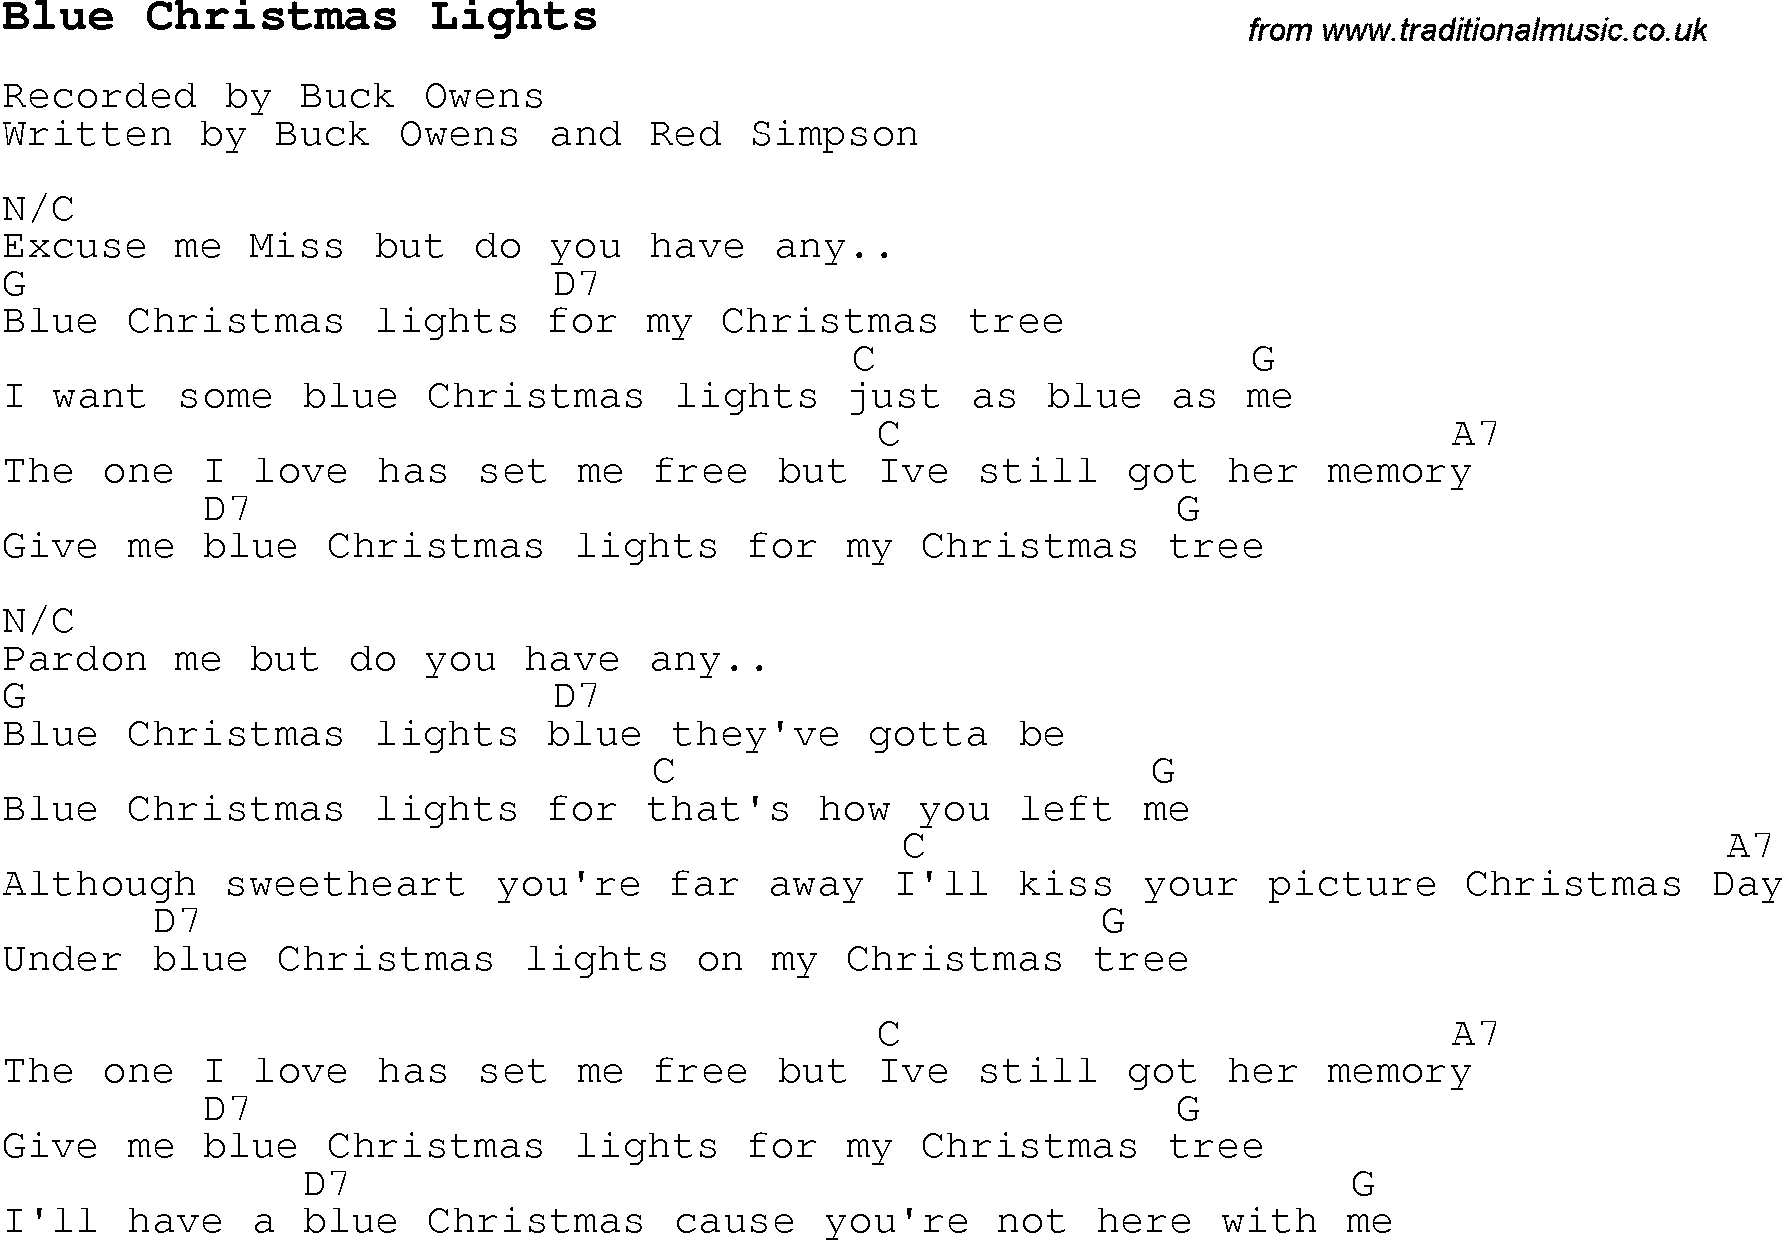 Blue Christmas Chords Christmas Carolsong Lyrics With Chords For Blue Christmas Lights